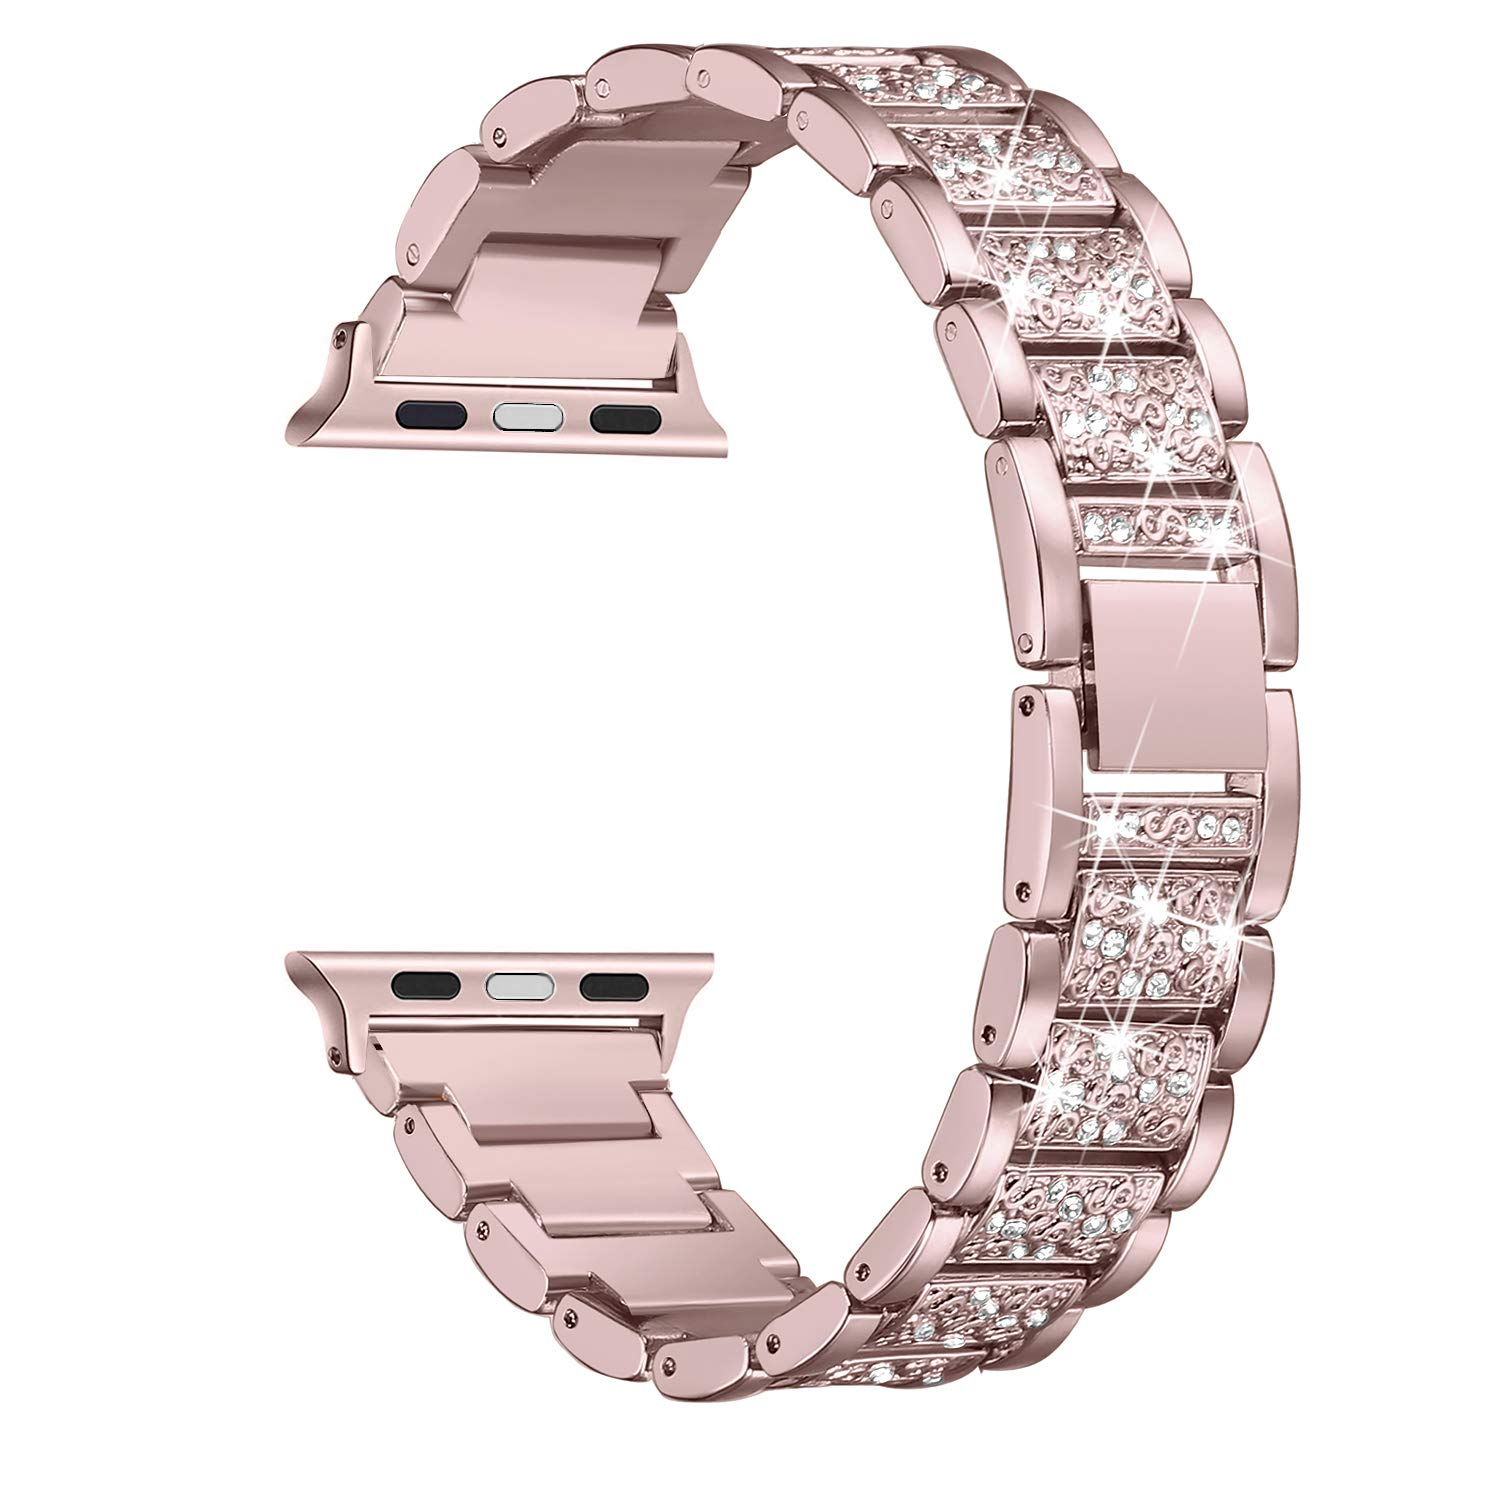 Secbolt Bling Bands Compatible with Apple Watch Band 42mm 44mm iwatch Series 5 4 3 2 1, Metal Rhinestone Bling Replacement Wristband, Rose Gold by Secbolt